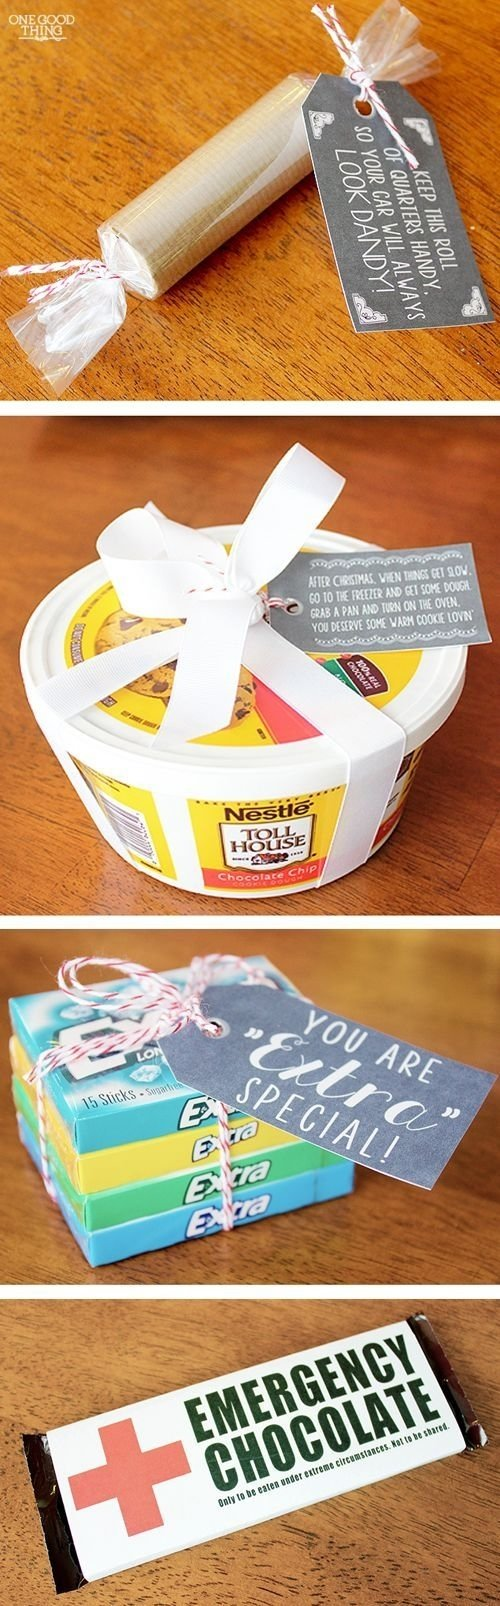 10 Unique Good Gift Ideas For Sister 193 best gift ideas images on pinterest birthday gifts bricolage 2020